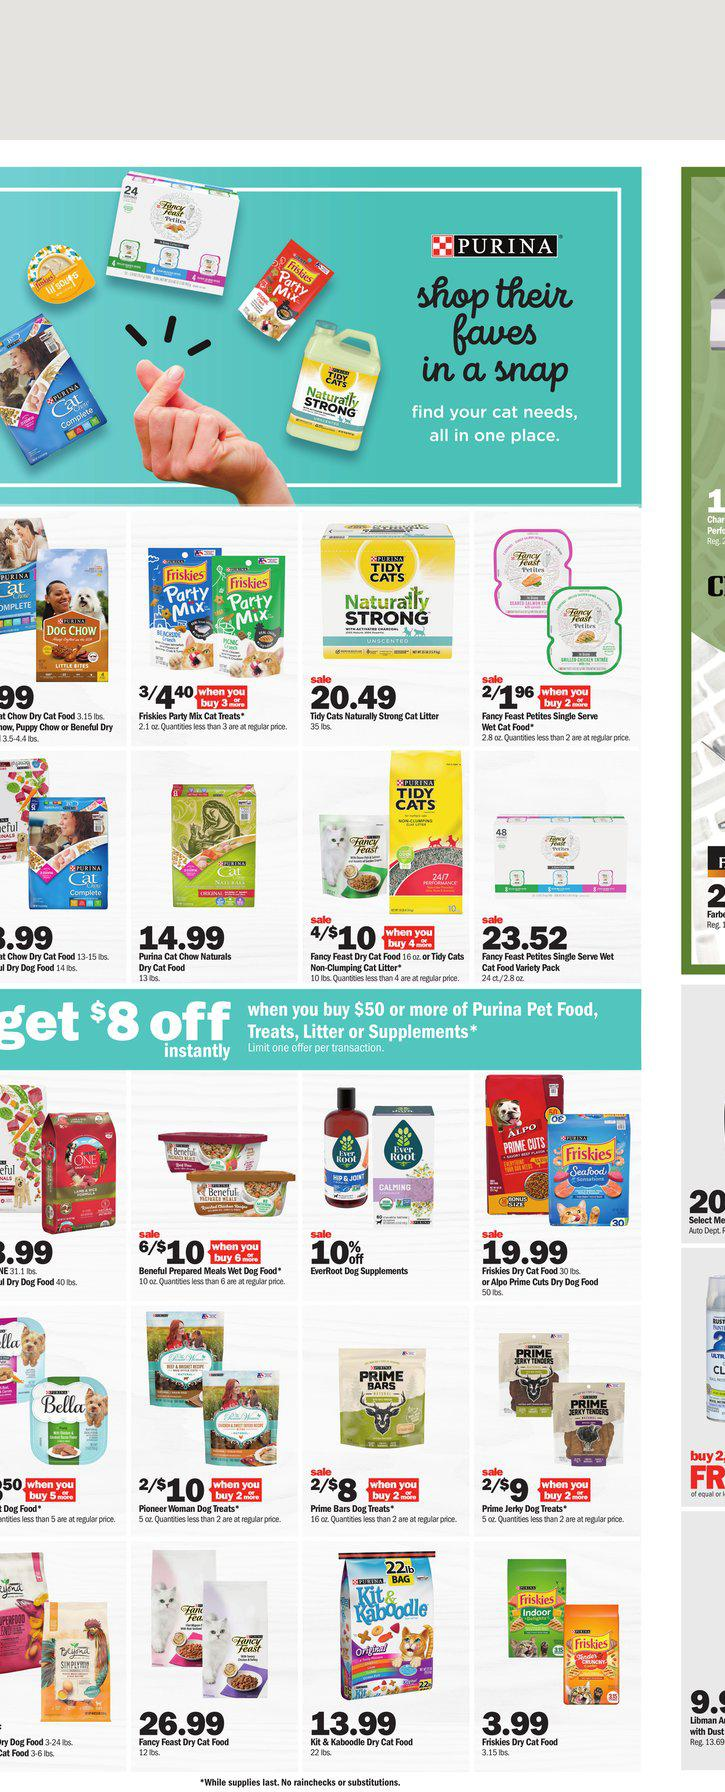 06.06.2021 Meijer ad 19. page